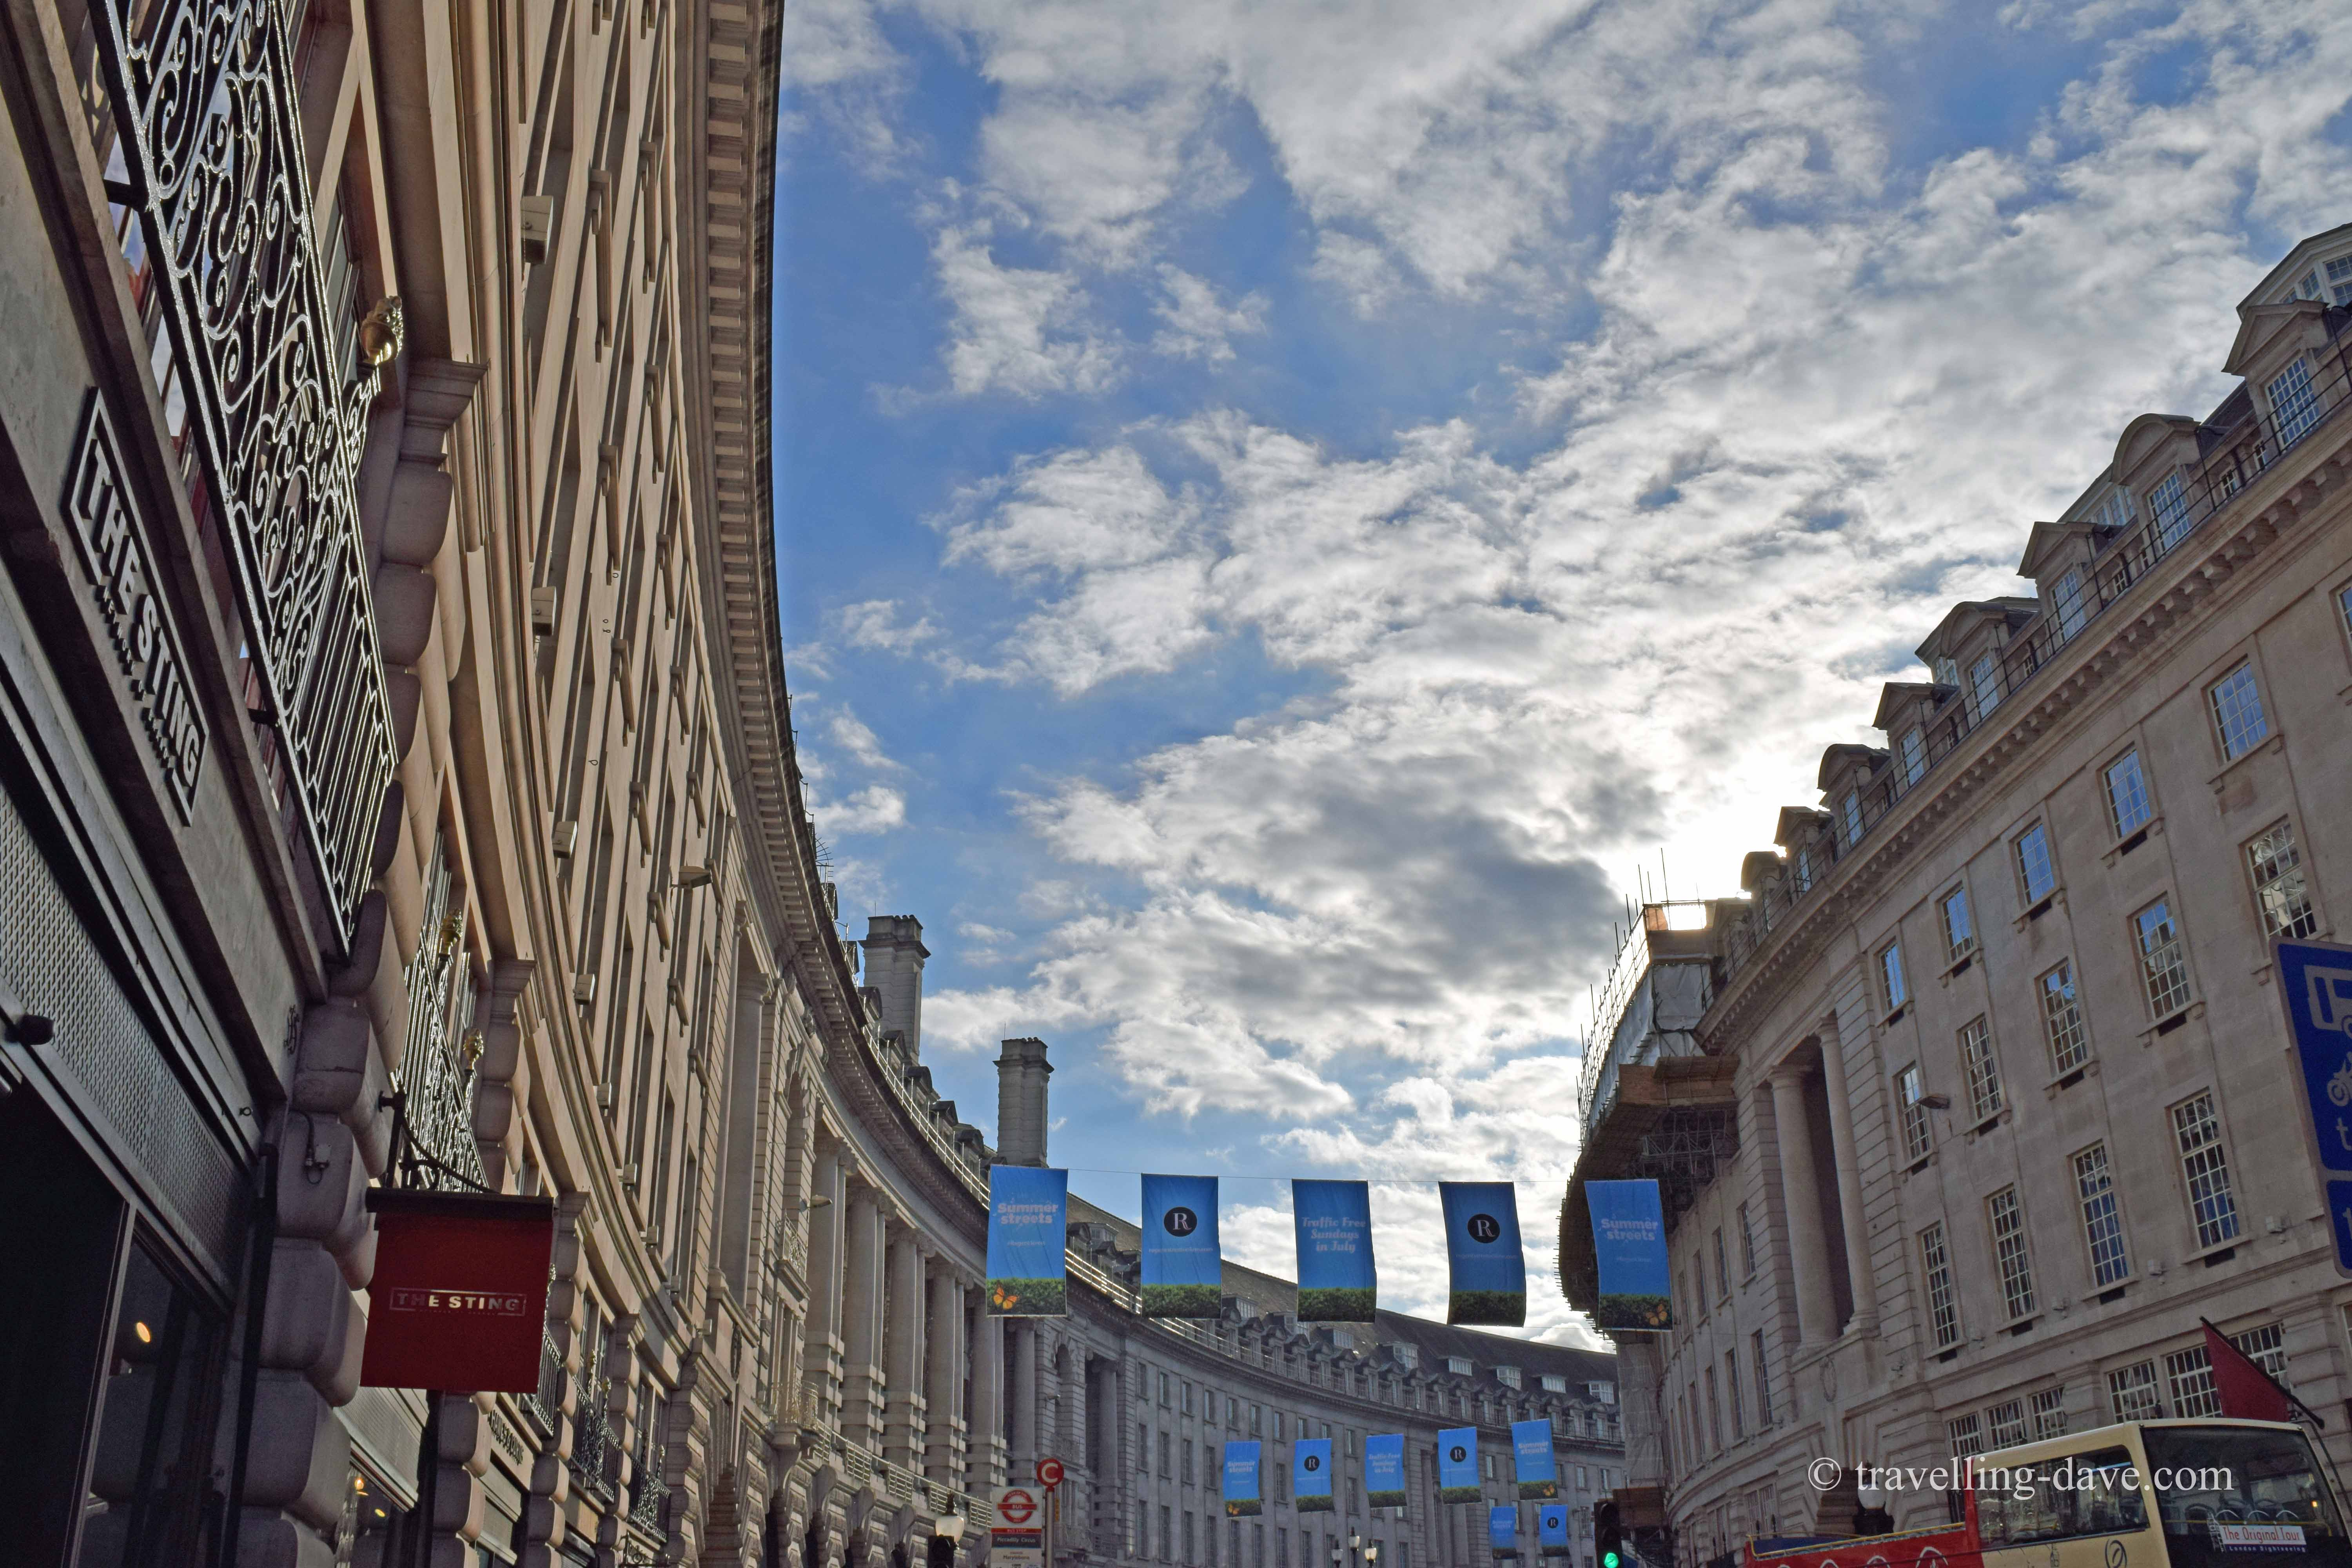 View of Regent Street from Piccadilly Circus